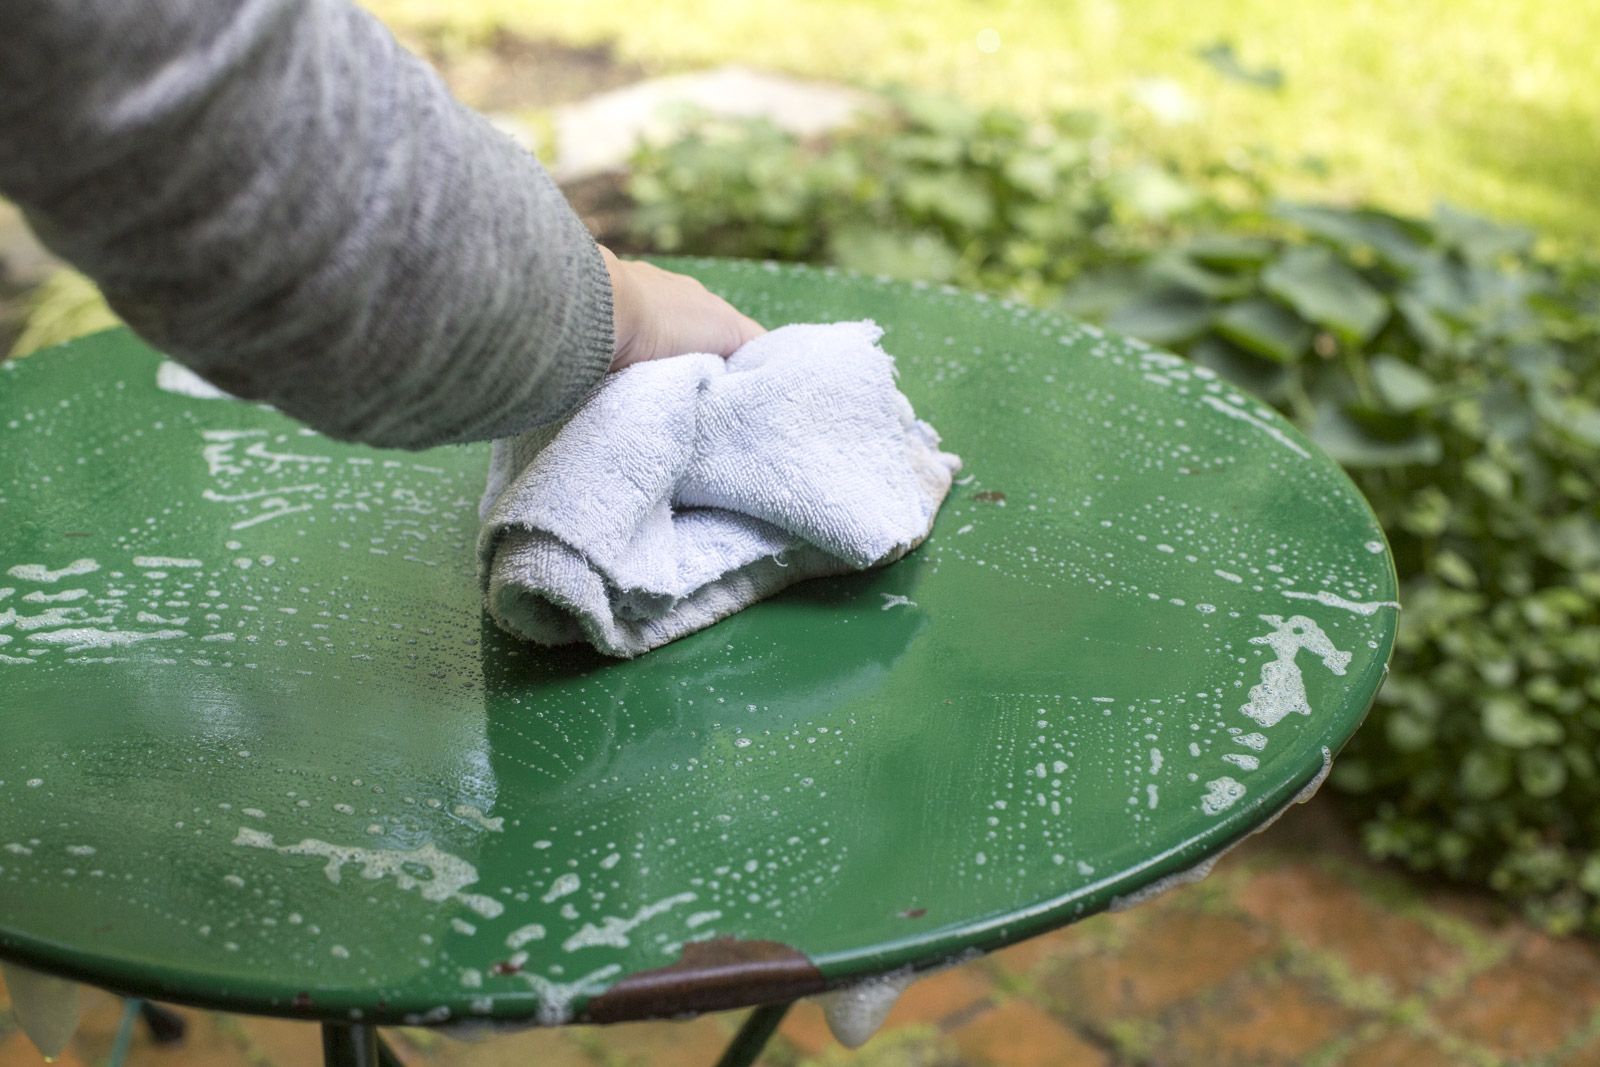 wash outdoor furniture with warm soapy water